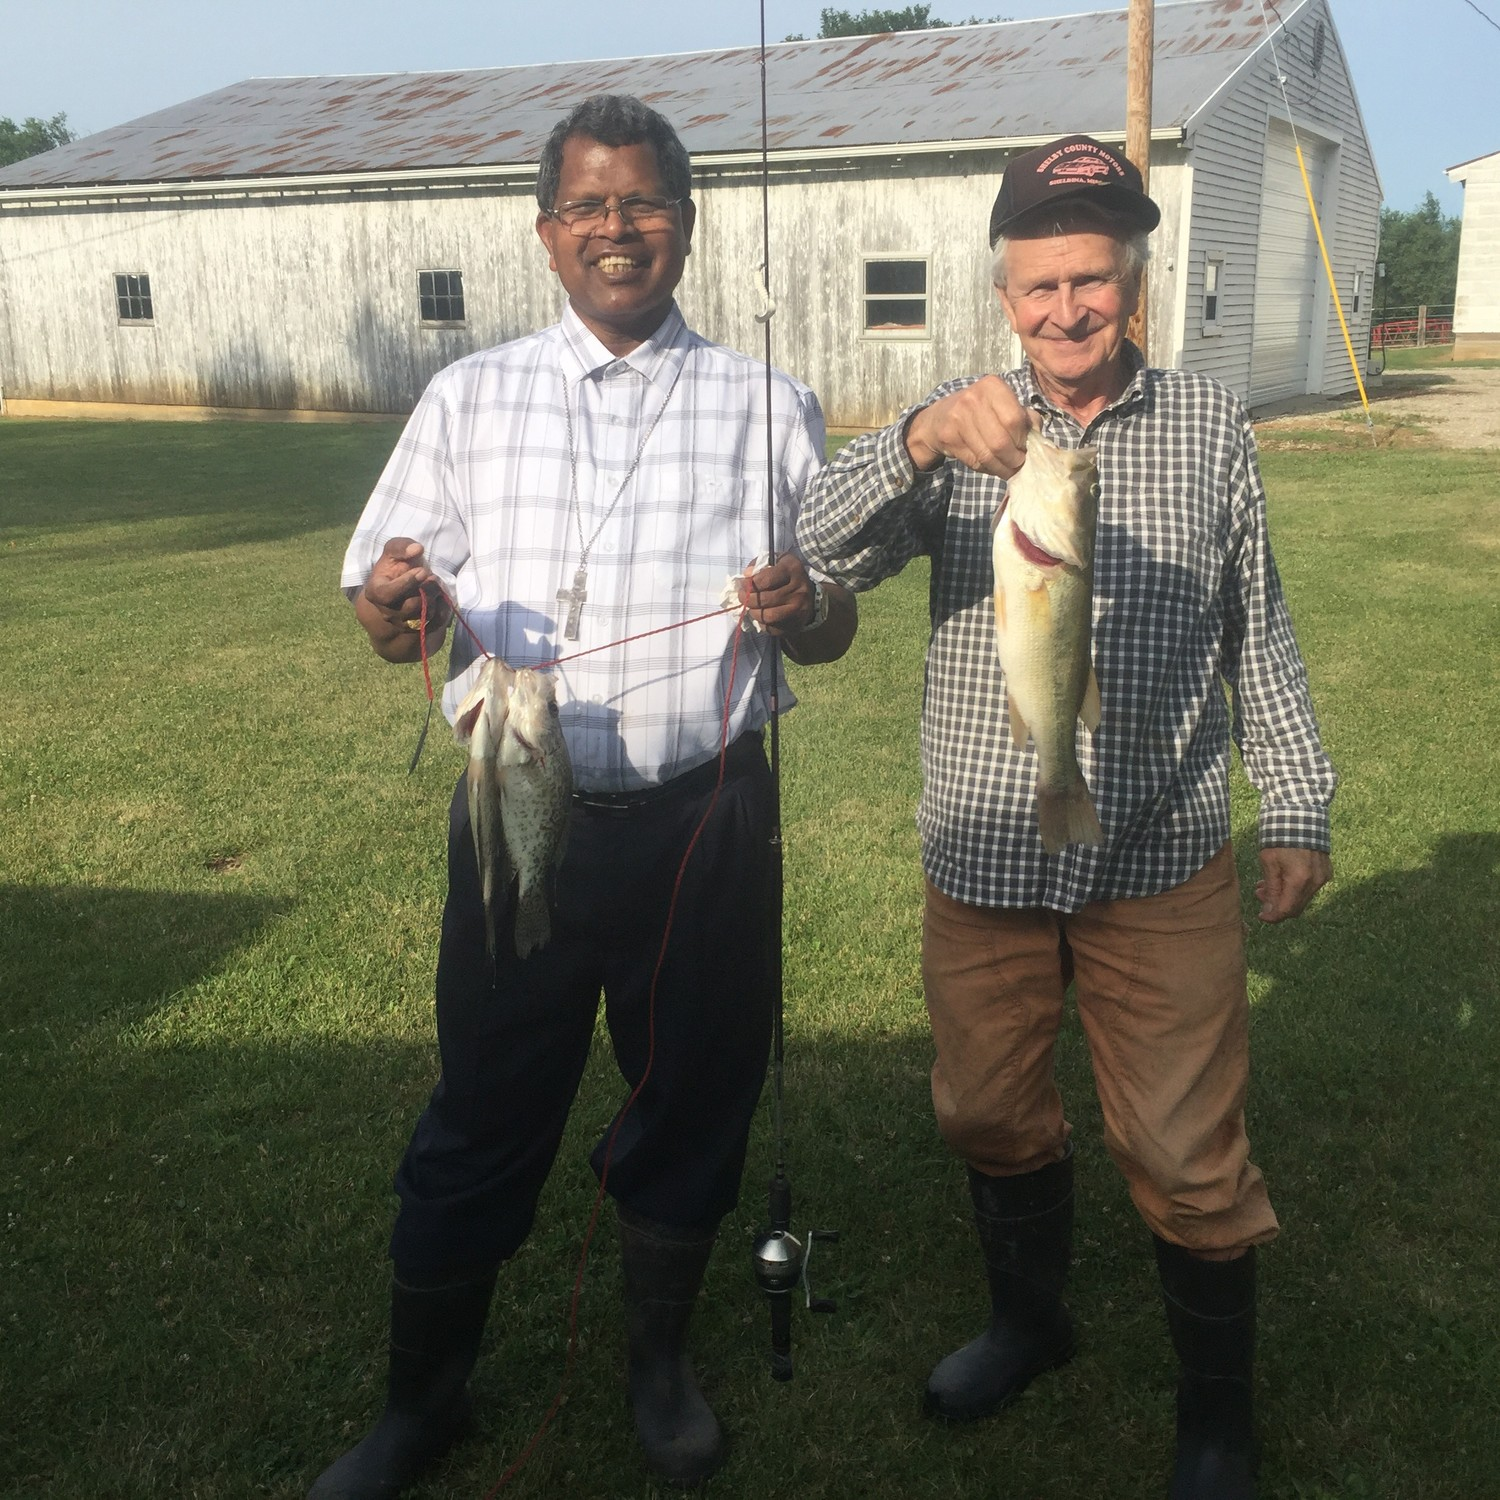 Bishop Kerketta and a member of St. Mary parish in Shelbina display fish they caught during his recent visit to the Jefferson City diocese.